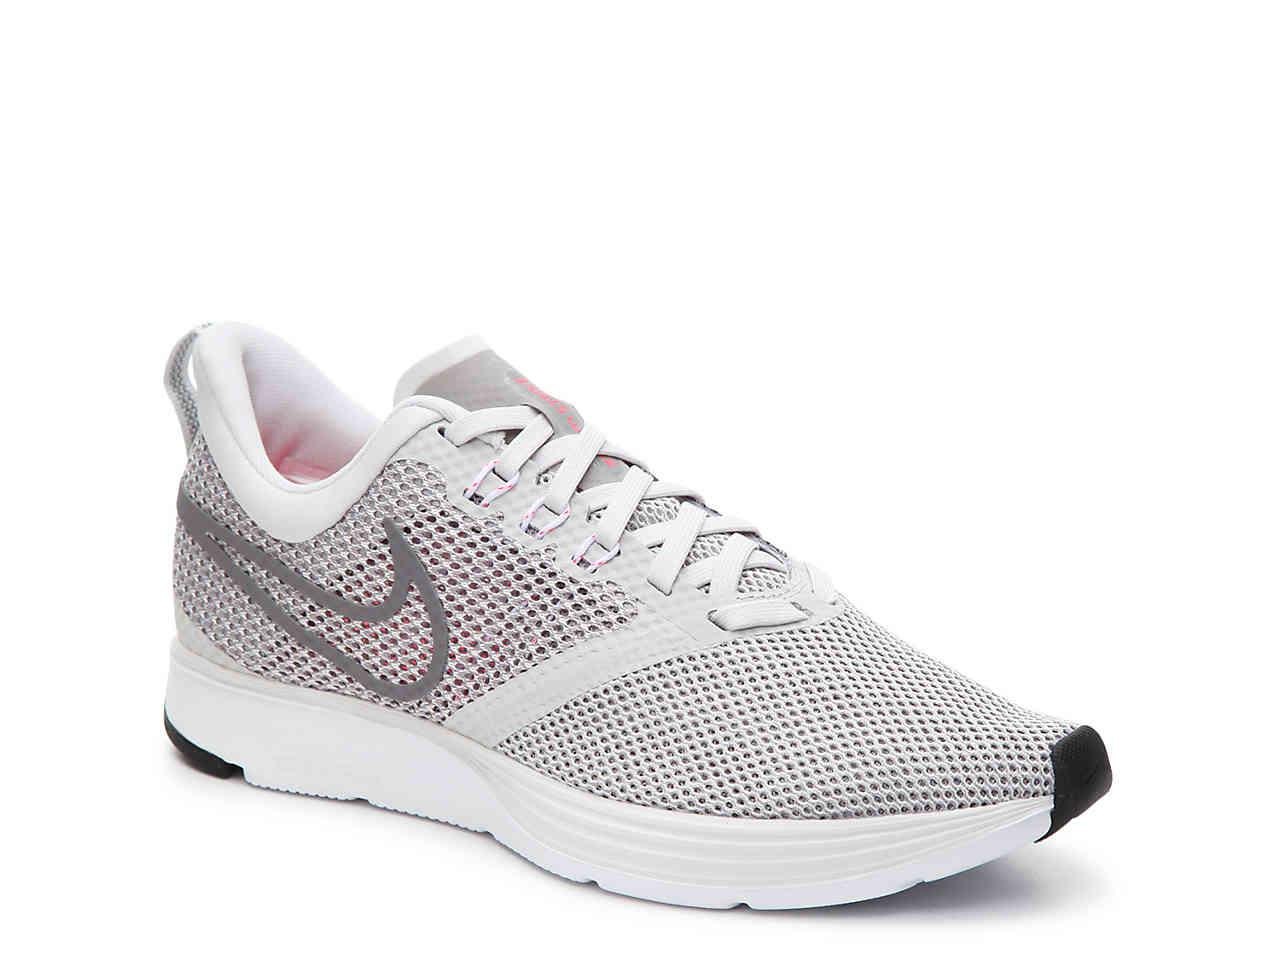 f1ff782857b4e buy air max motion sneaker acebc d88a1  sweden lyst nike zoom strike  lightweight running shoe in gray for men f3dba 28aa9